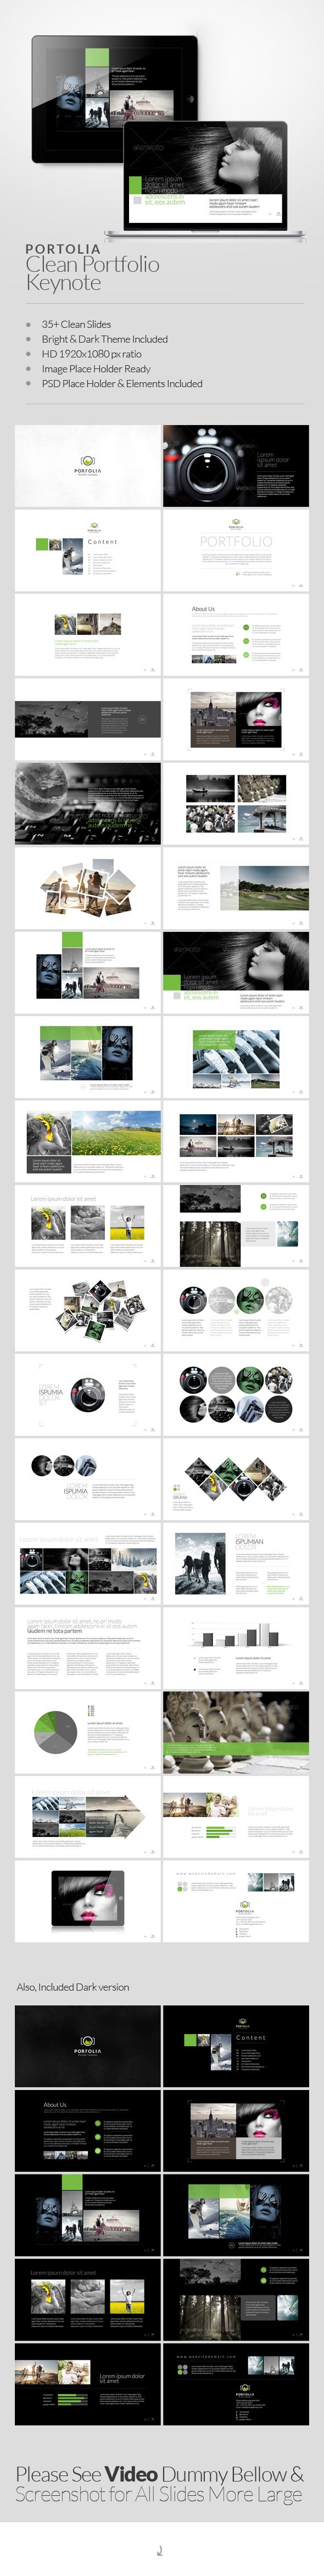 Portolia Multipurpose Clean Portfolio Keynote — Keynote KEY #professional #plan • Available here → https://graphicriver.net/item/portolia-multipurpose-clean-portfolio-keynote/6452302?ref=pxcr